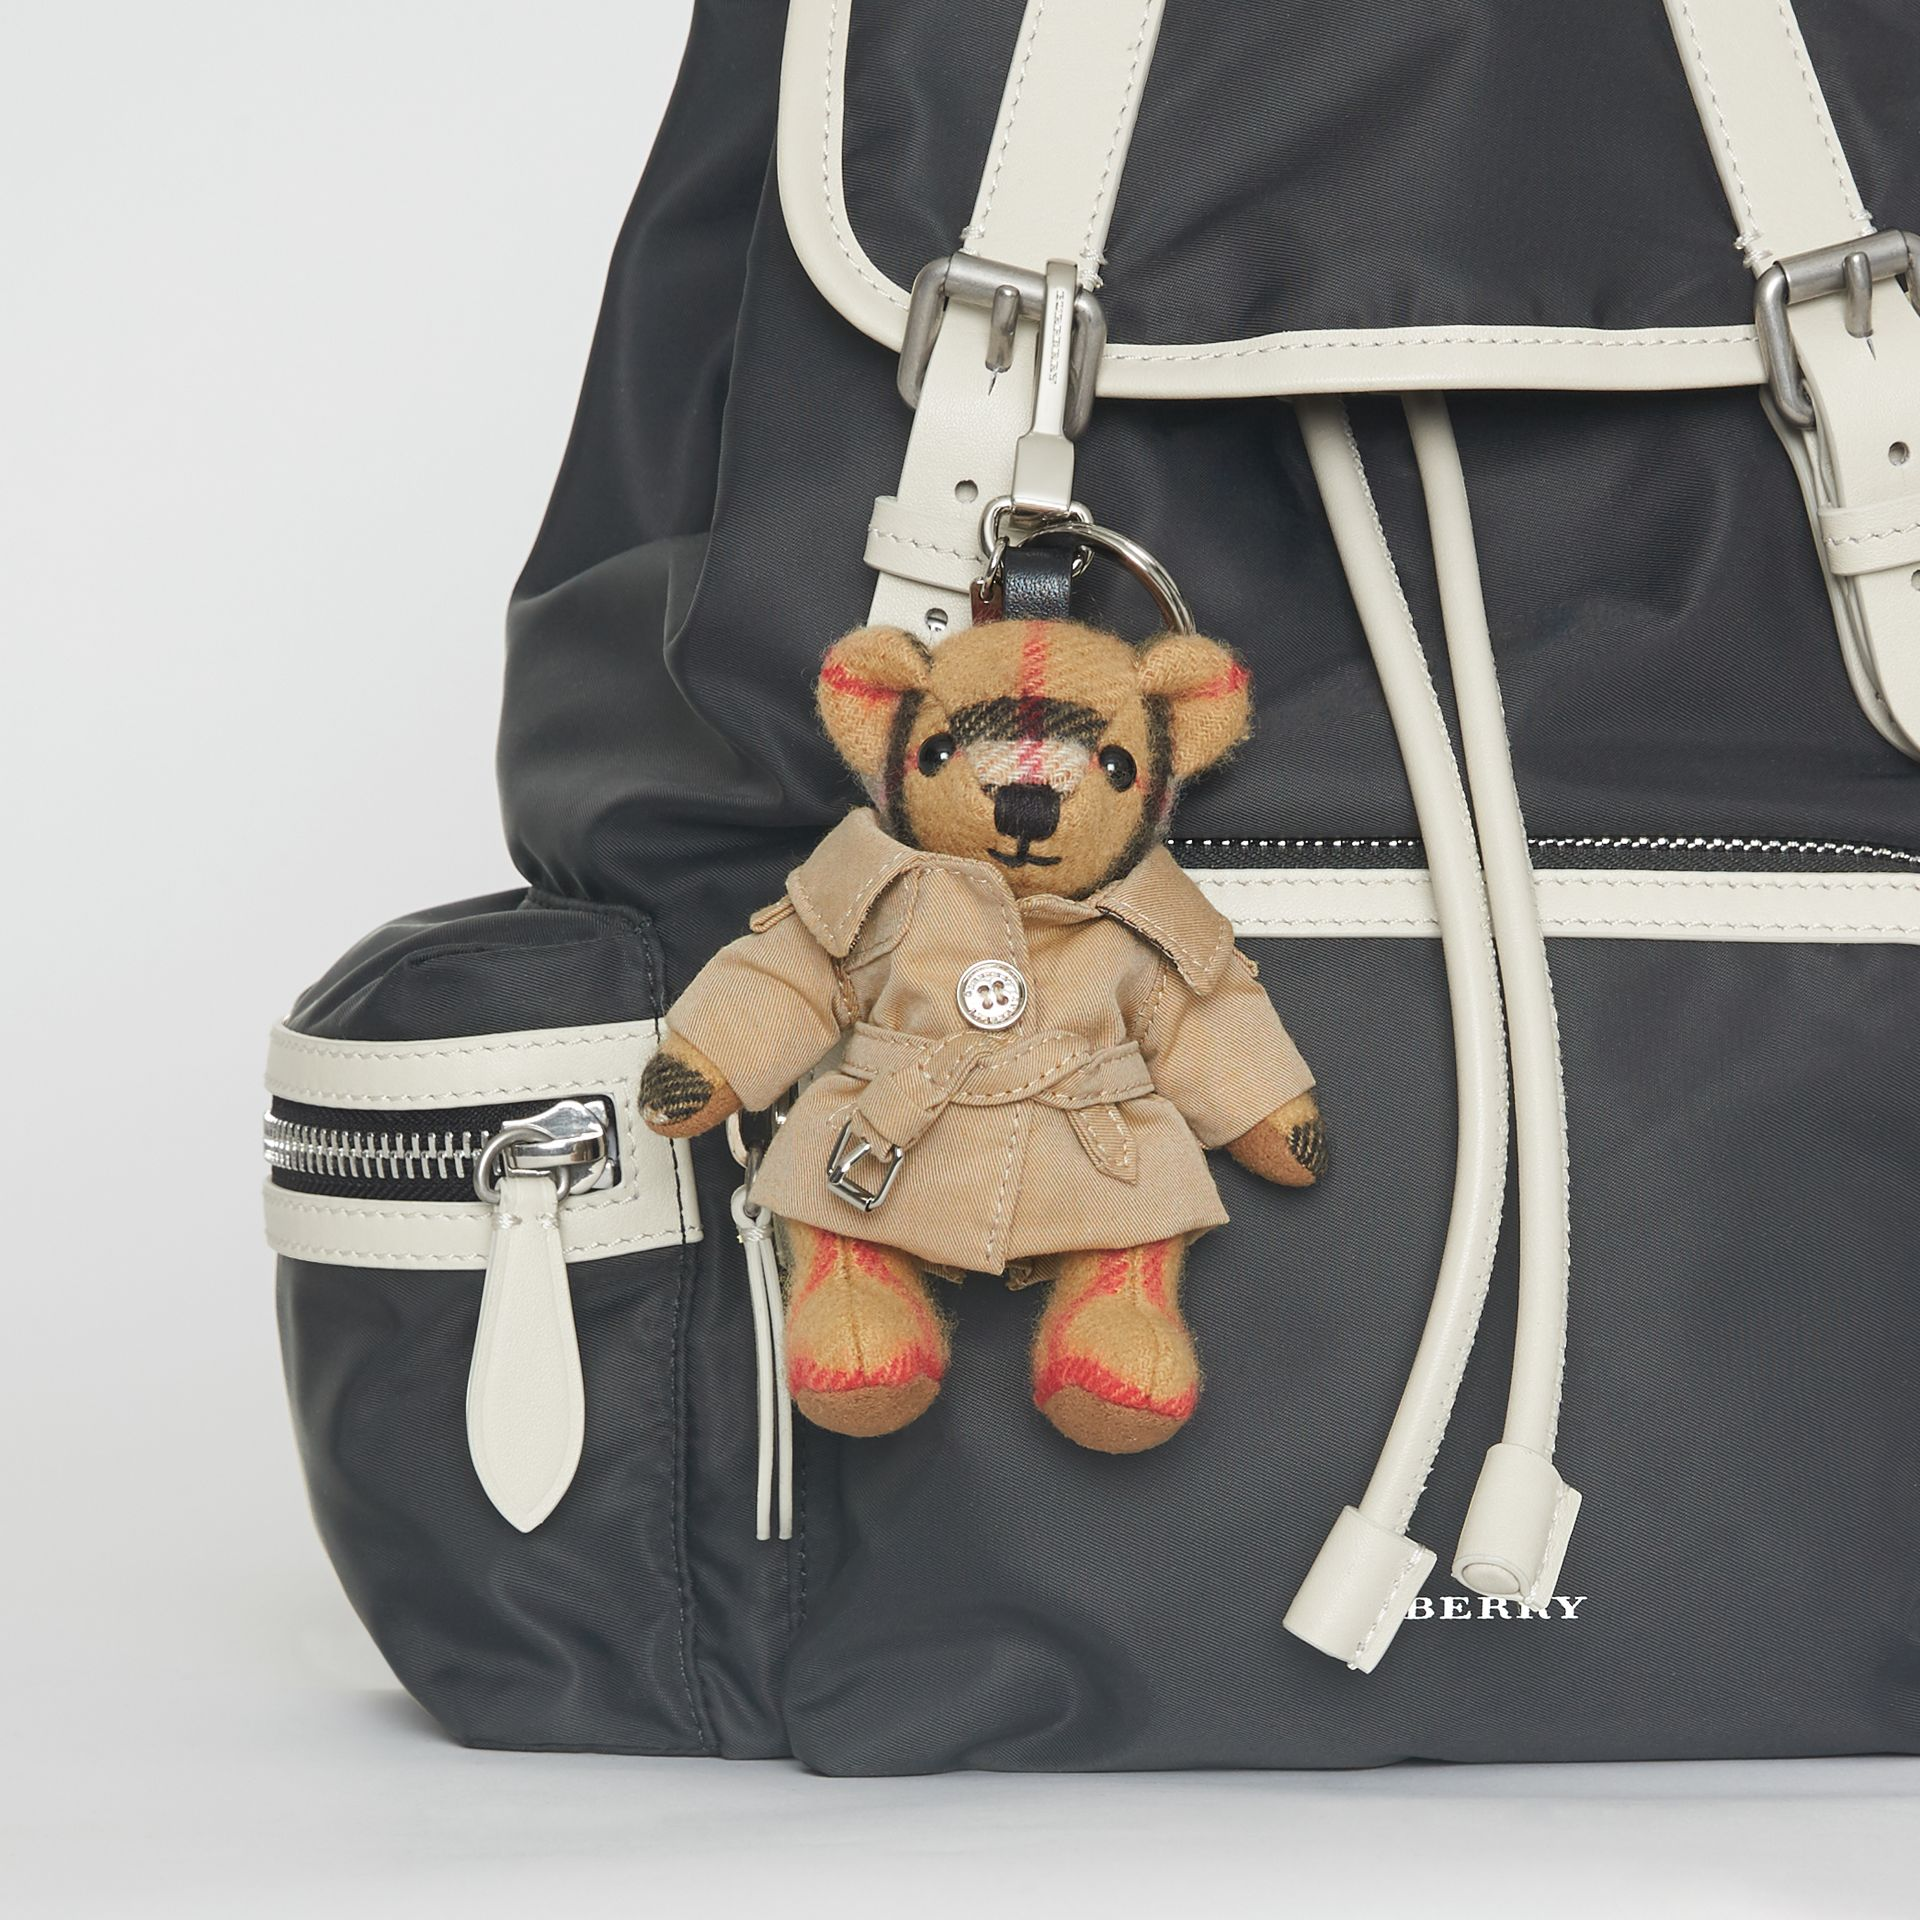 Bijou porte-clés Thomas Bear avec trench (Jaune Antique) | Burberry - photo de la galerie 2